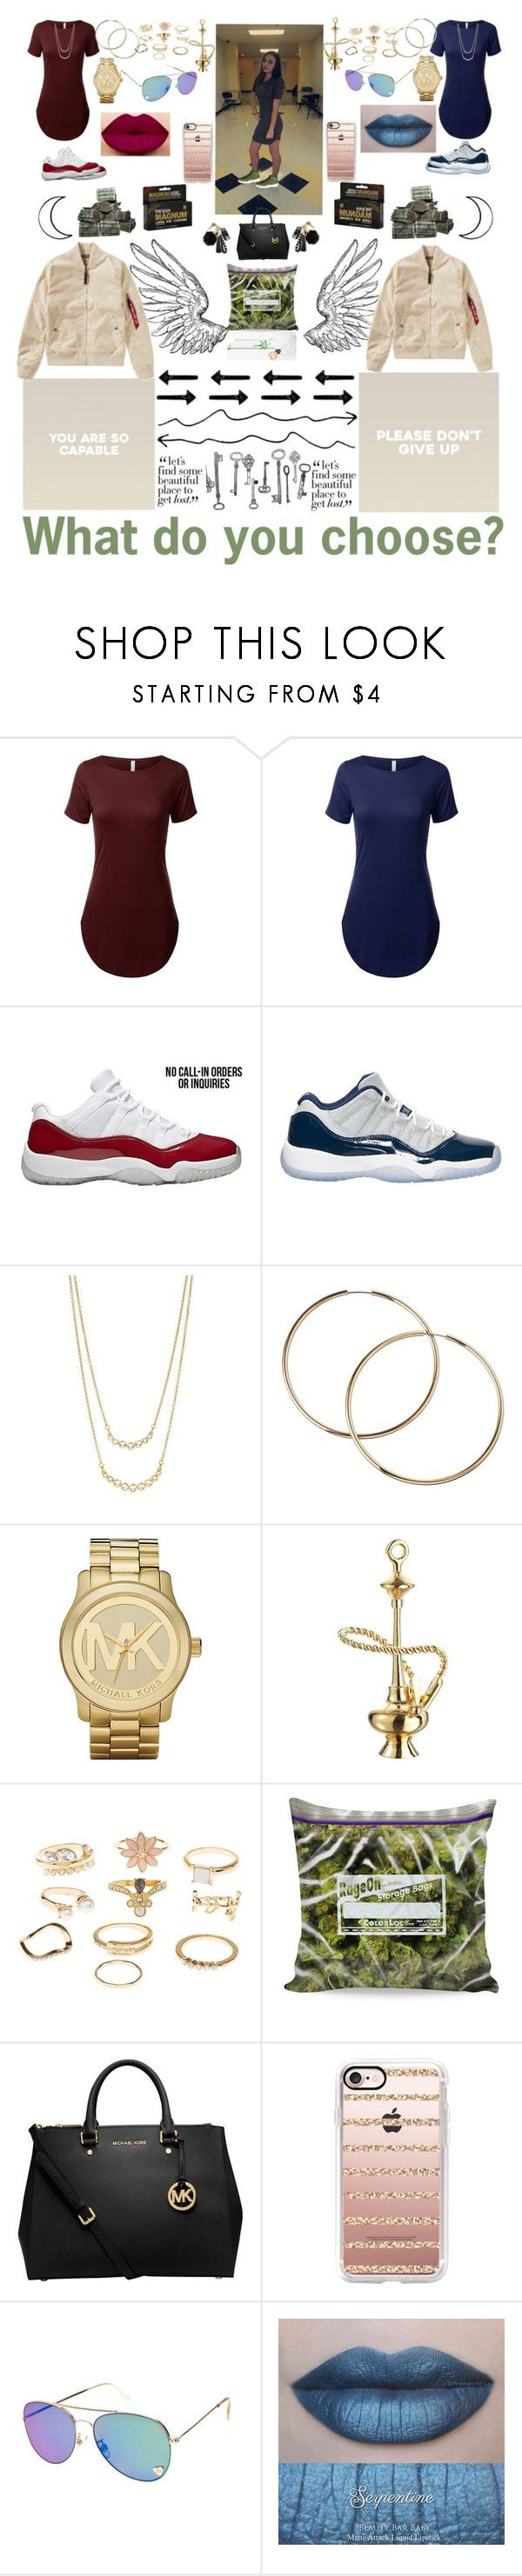 """""""#35"""" by forever-cia ❤ liked on Polyvore featuring Retrò, Kate Spade, Michael Kors, Jet Set Candy, Charlotte Russe, MICHAEL Michael Kors, GET LOST and Casetify"""